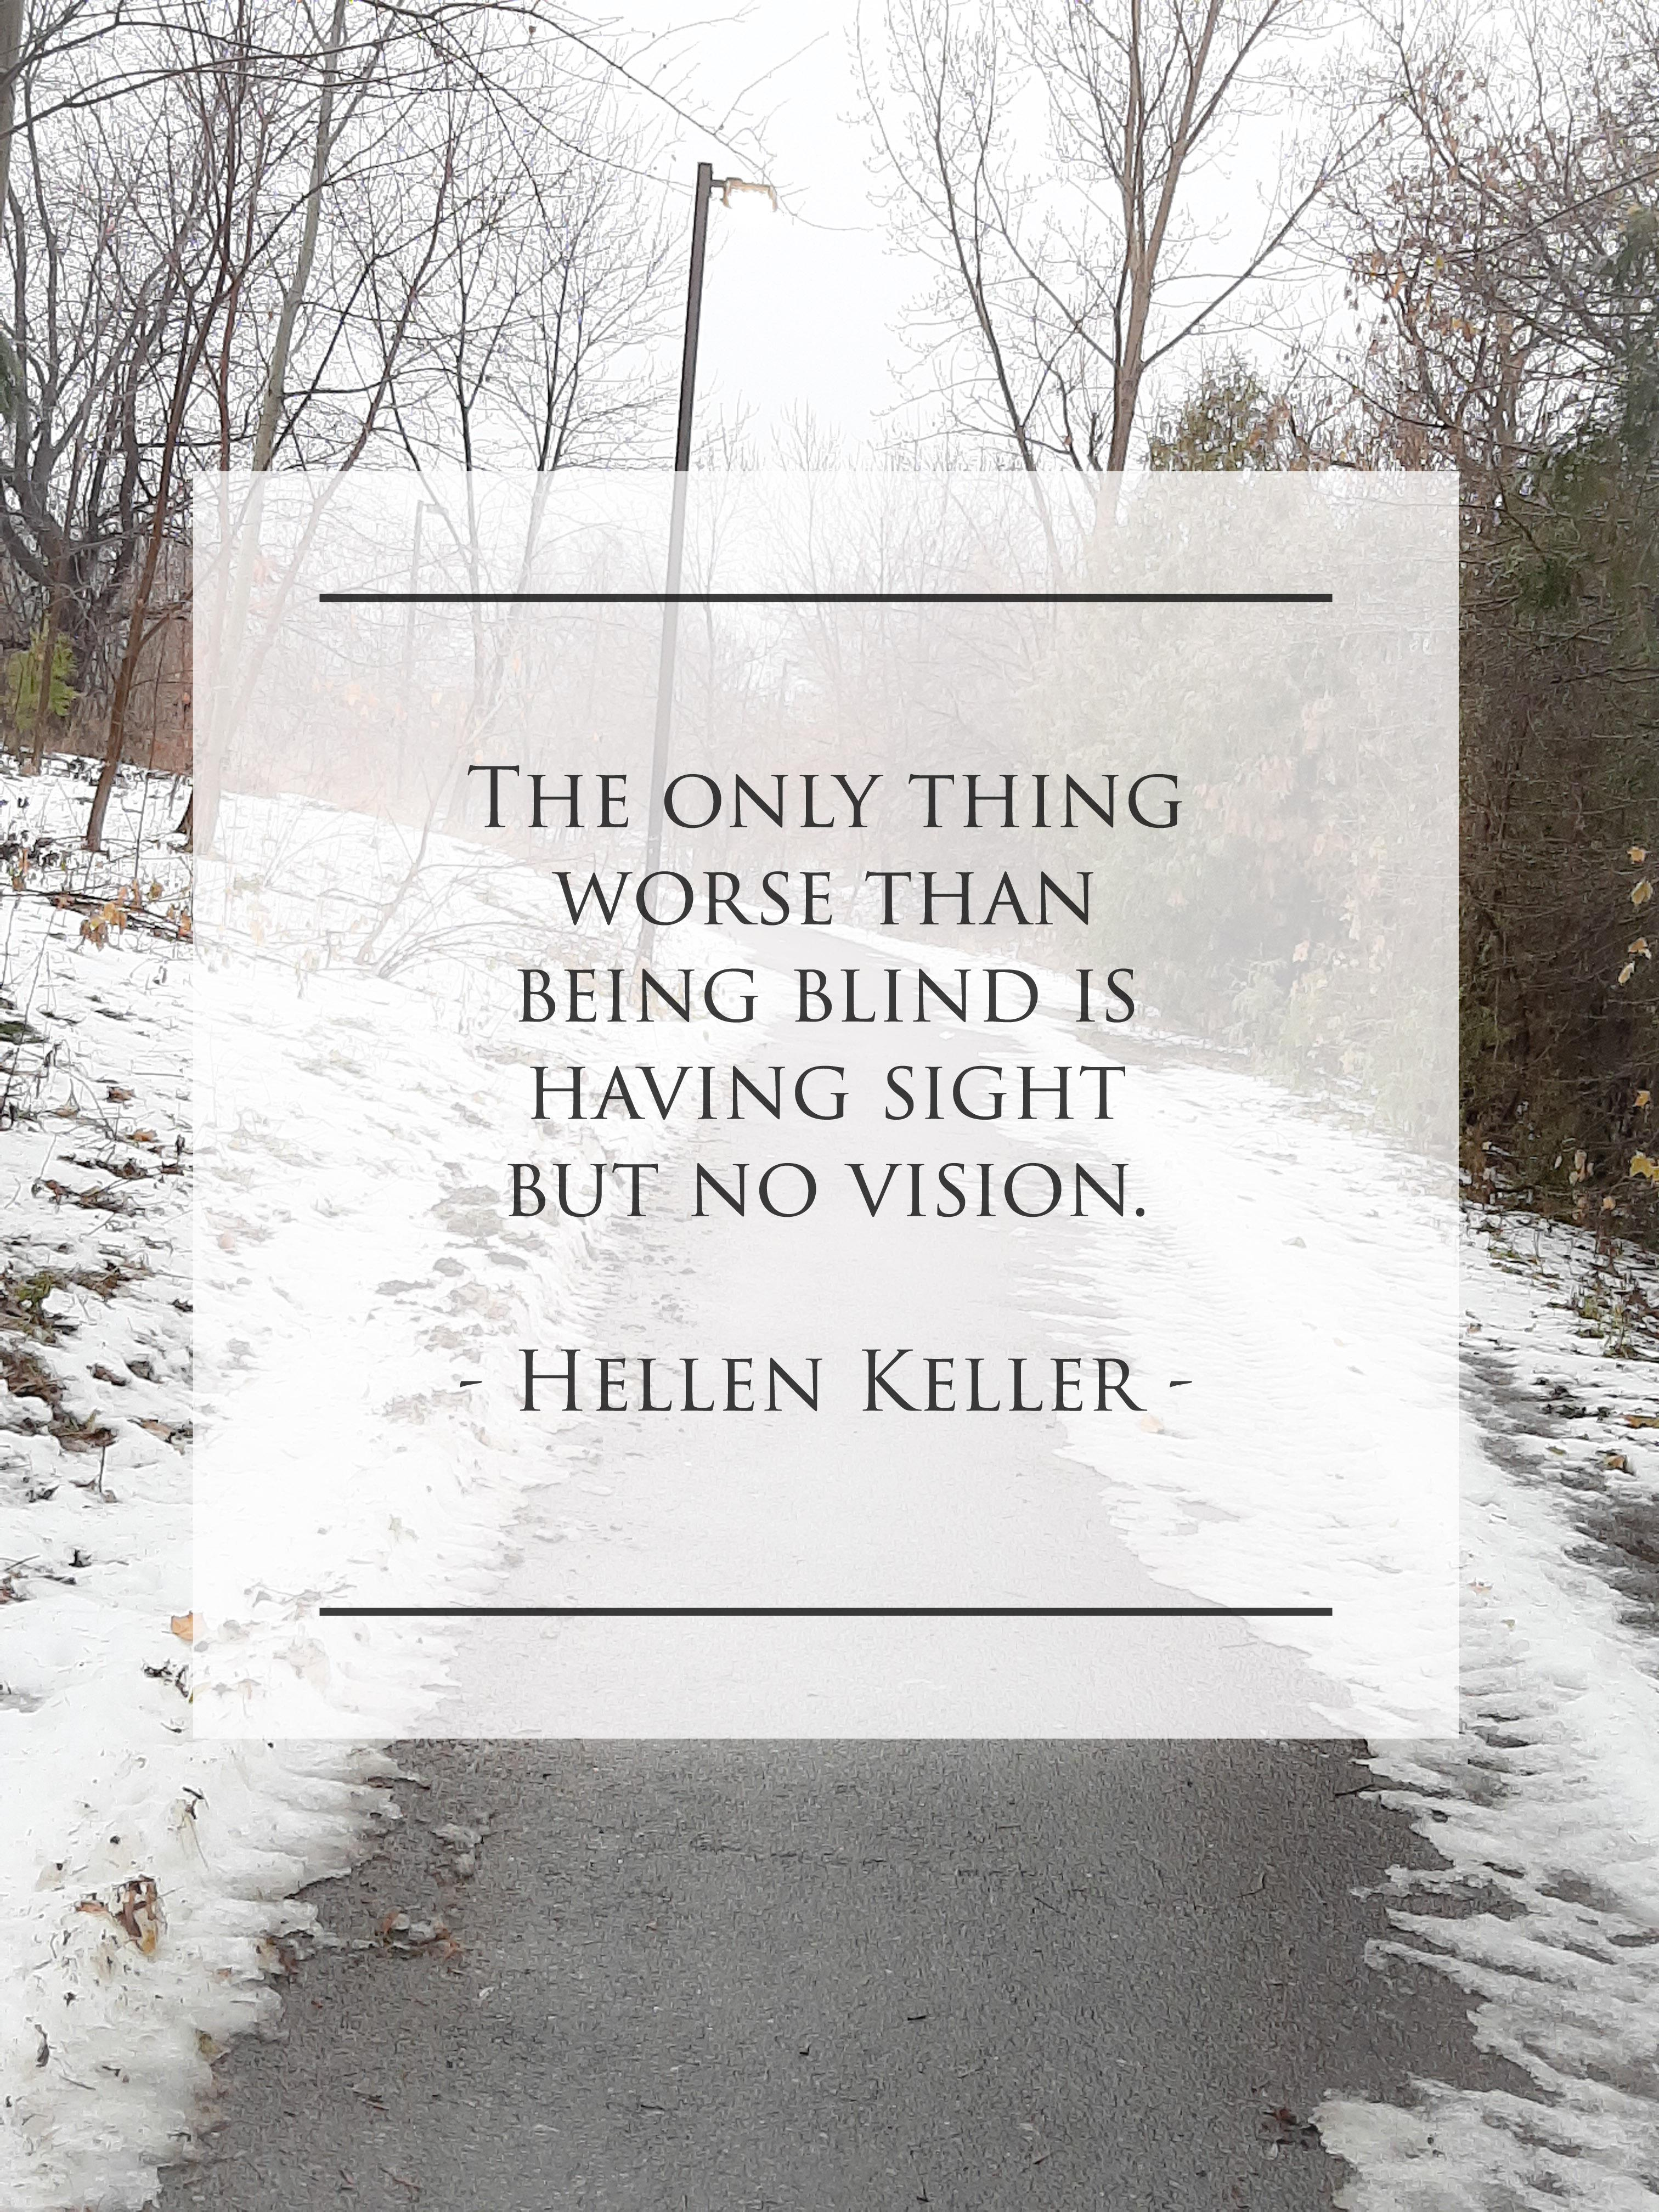 The only thing worse than being blind is having sight but no vision – Hellen Keller. (4032×3024)